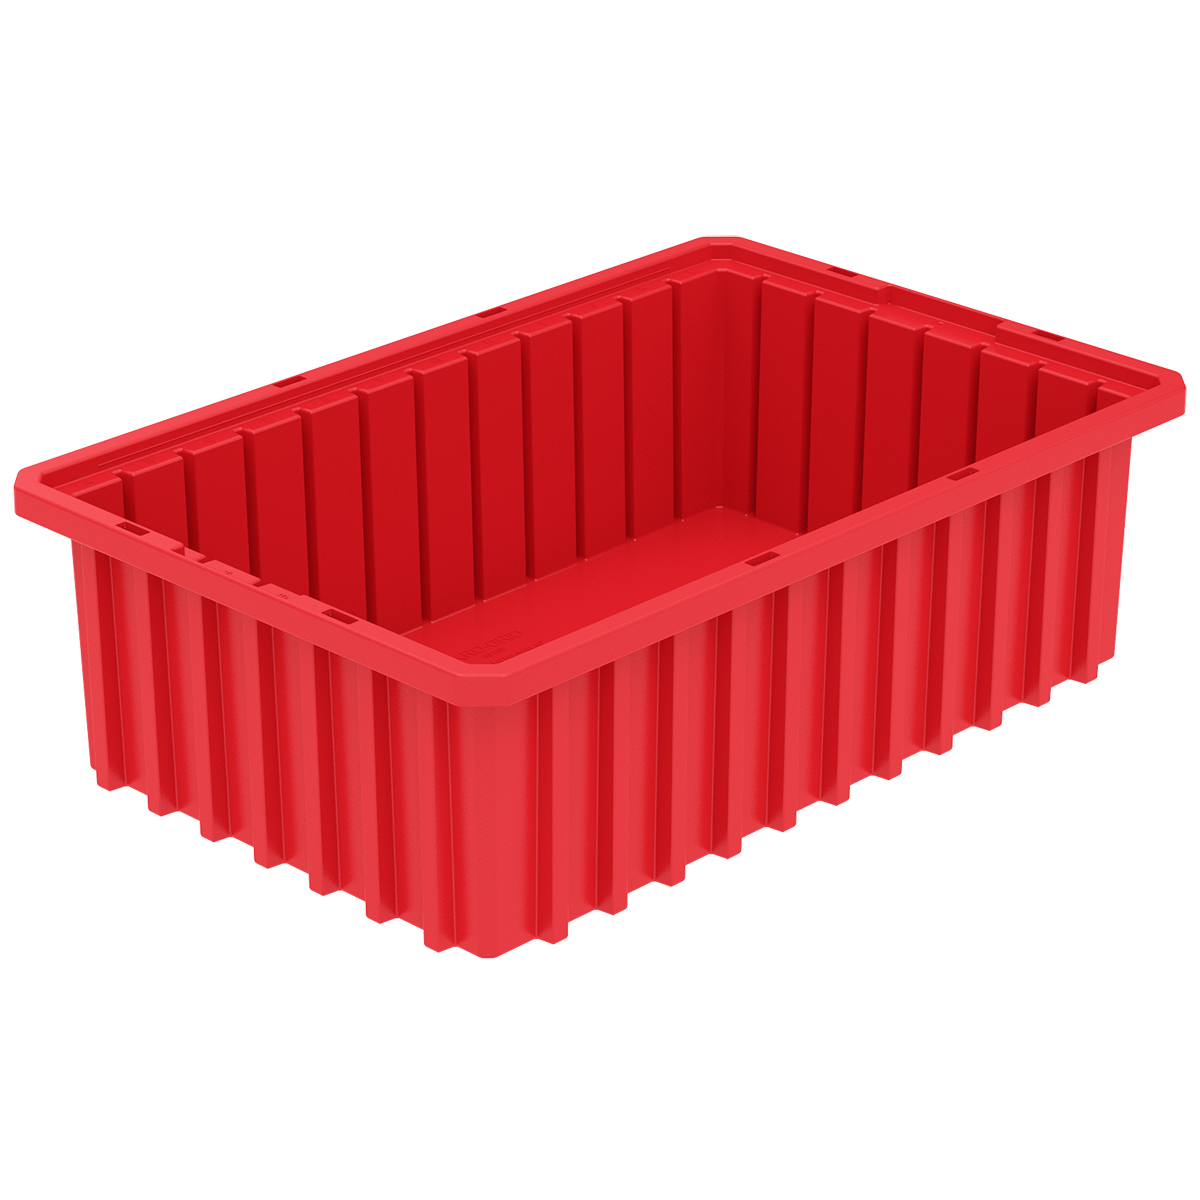 Akro-Grid Dividable Box 16-1/2 x 10-7/8 x 5, Red.  This item sold in carton quantities of 12.